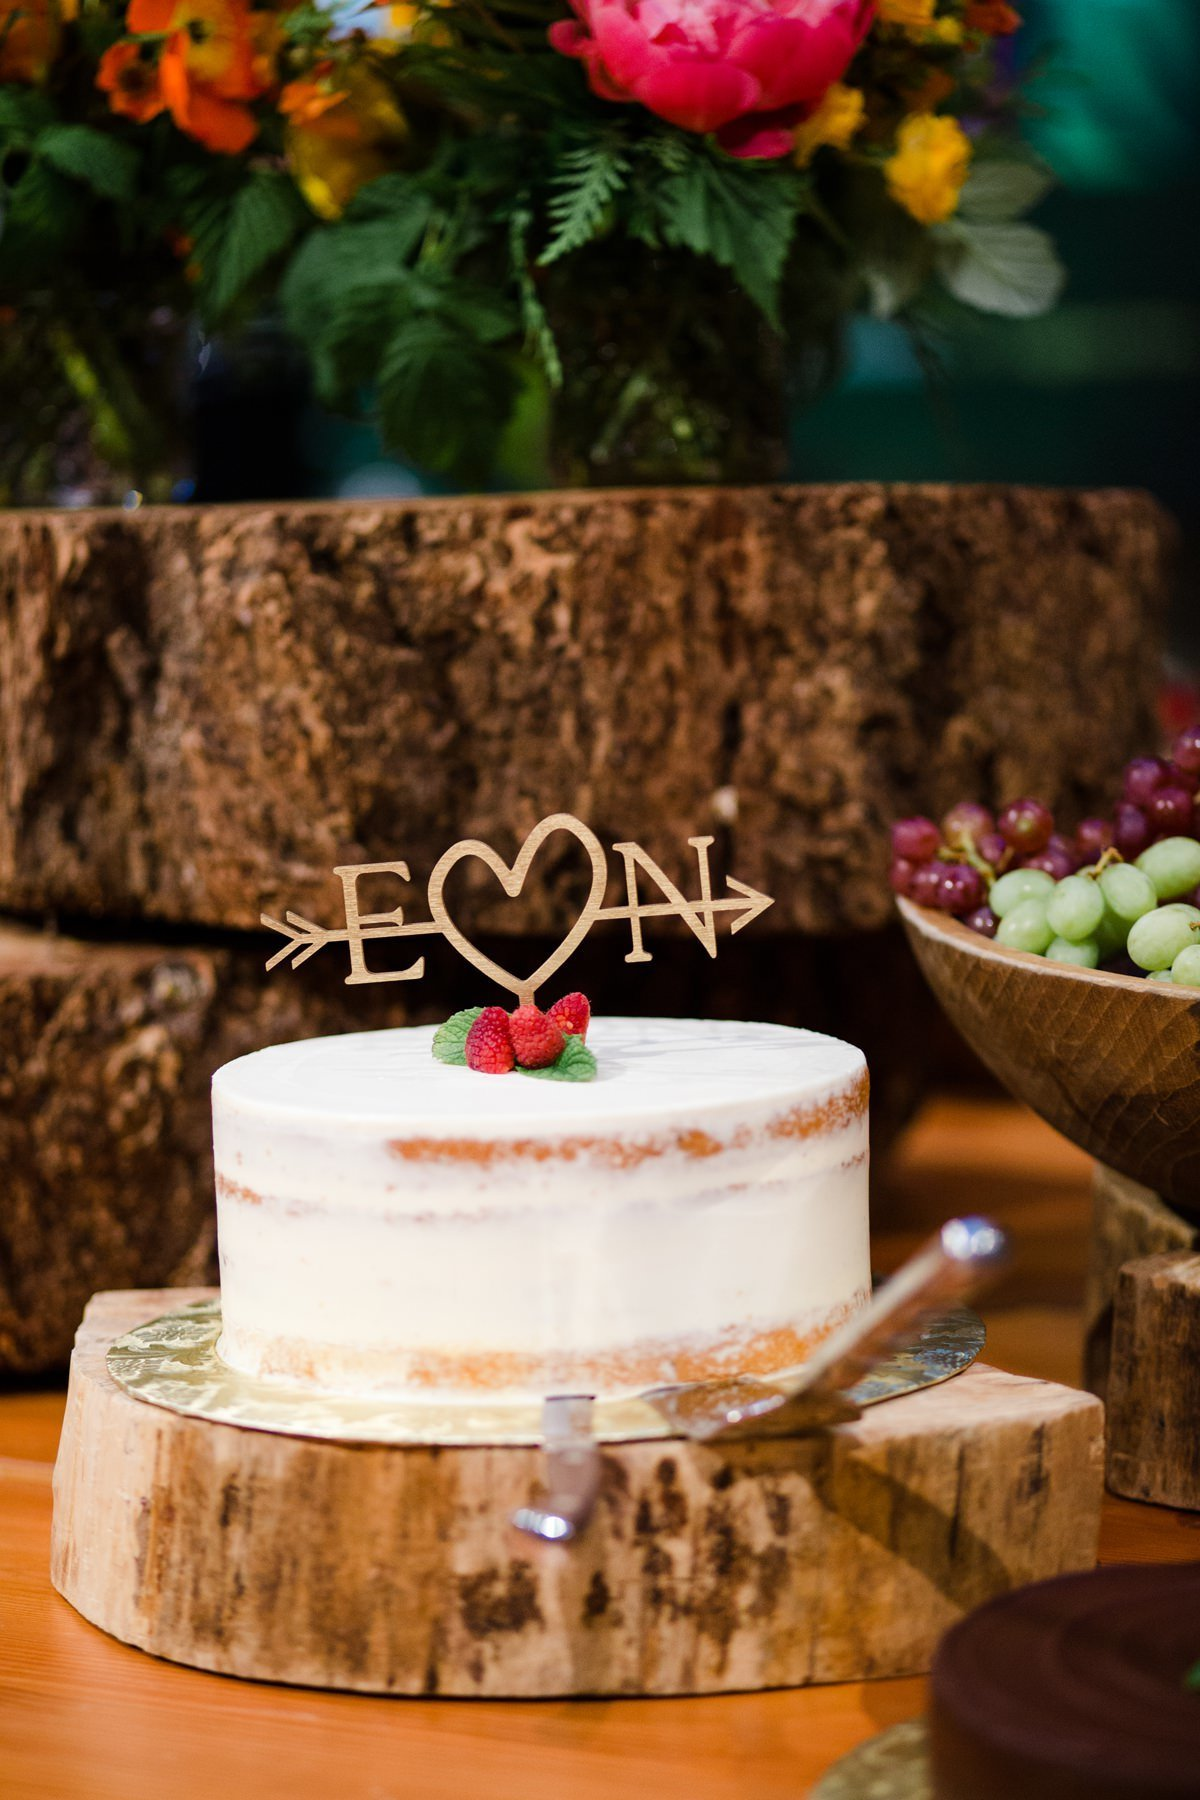 bainbridge-island-washington-wedding-photographer-cameron-zegers-29_1200